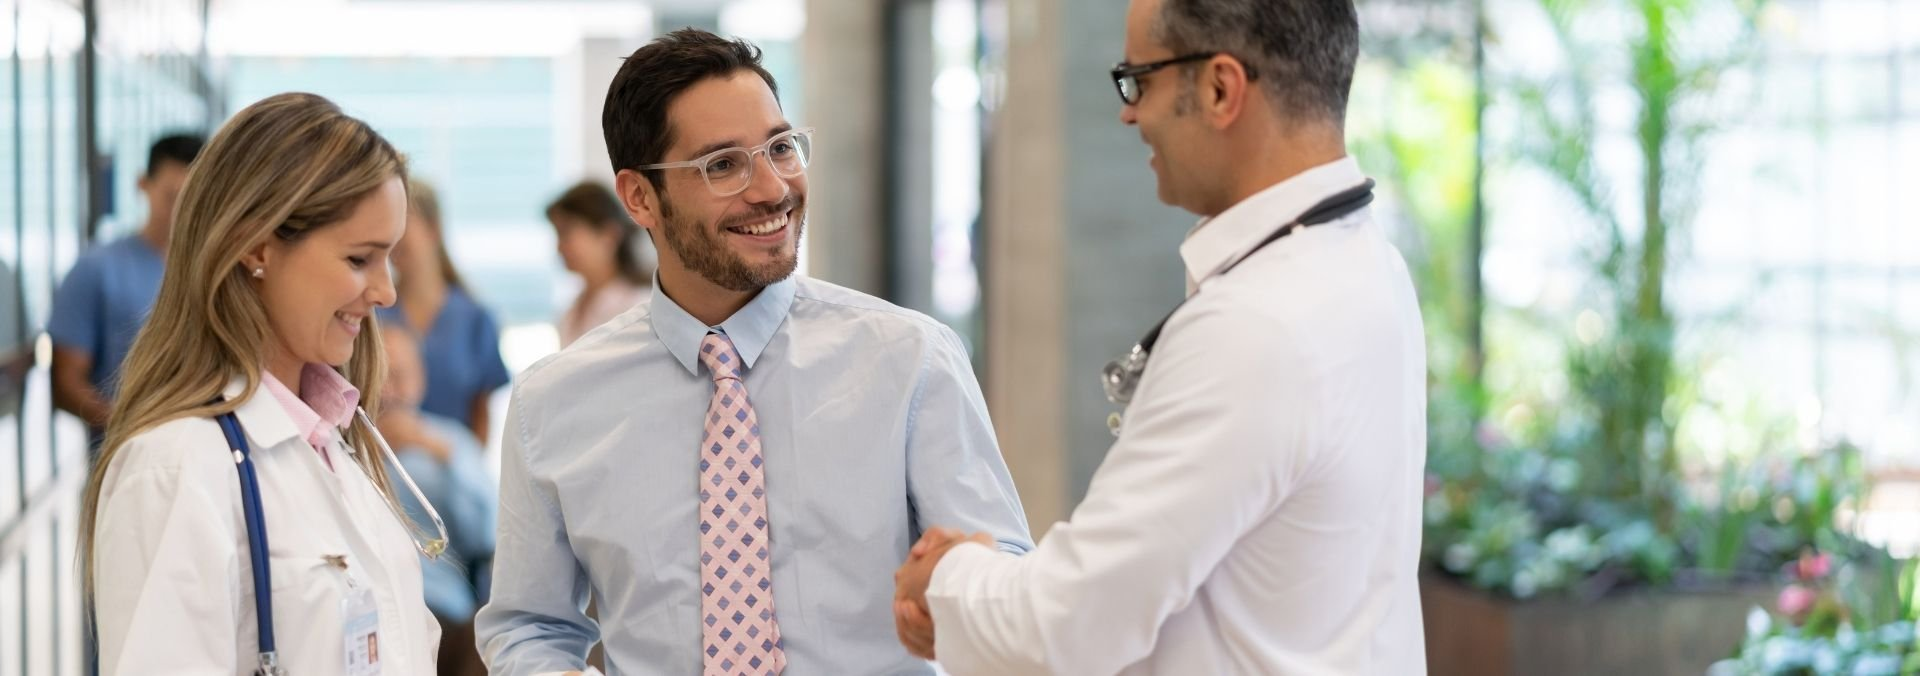 healthcare administrator with doctor